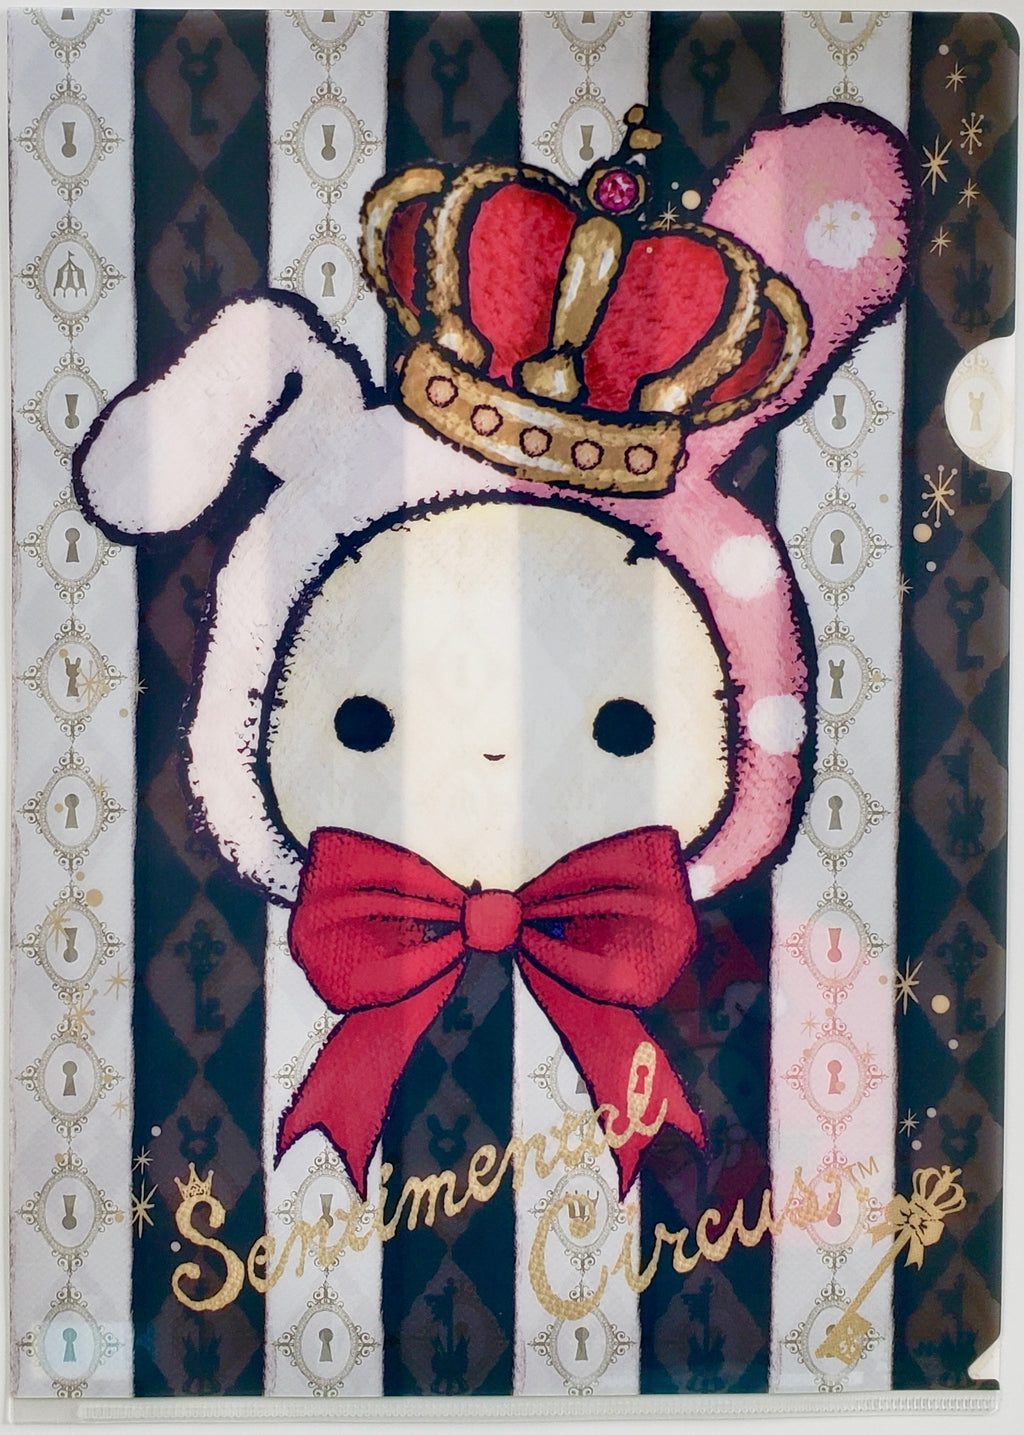 Sentimental Circus: Secret Anniversary A4 Plastic File Folder (Crown & Ribbon)